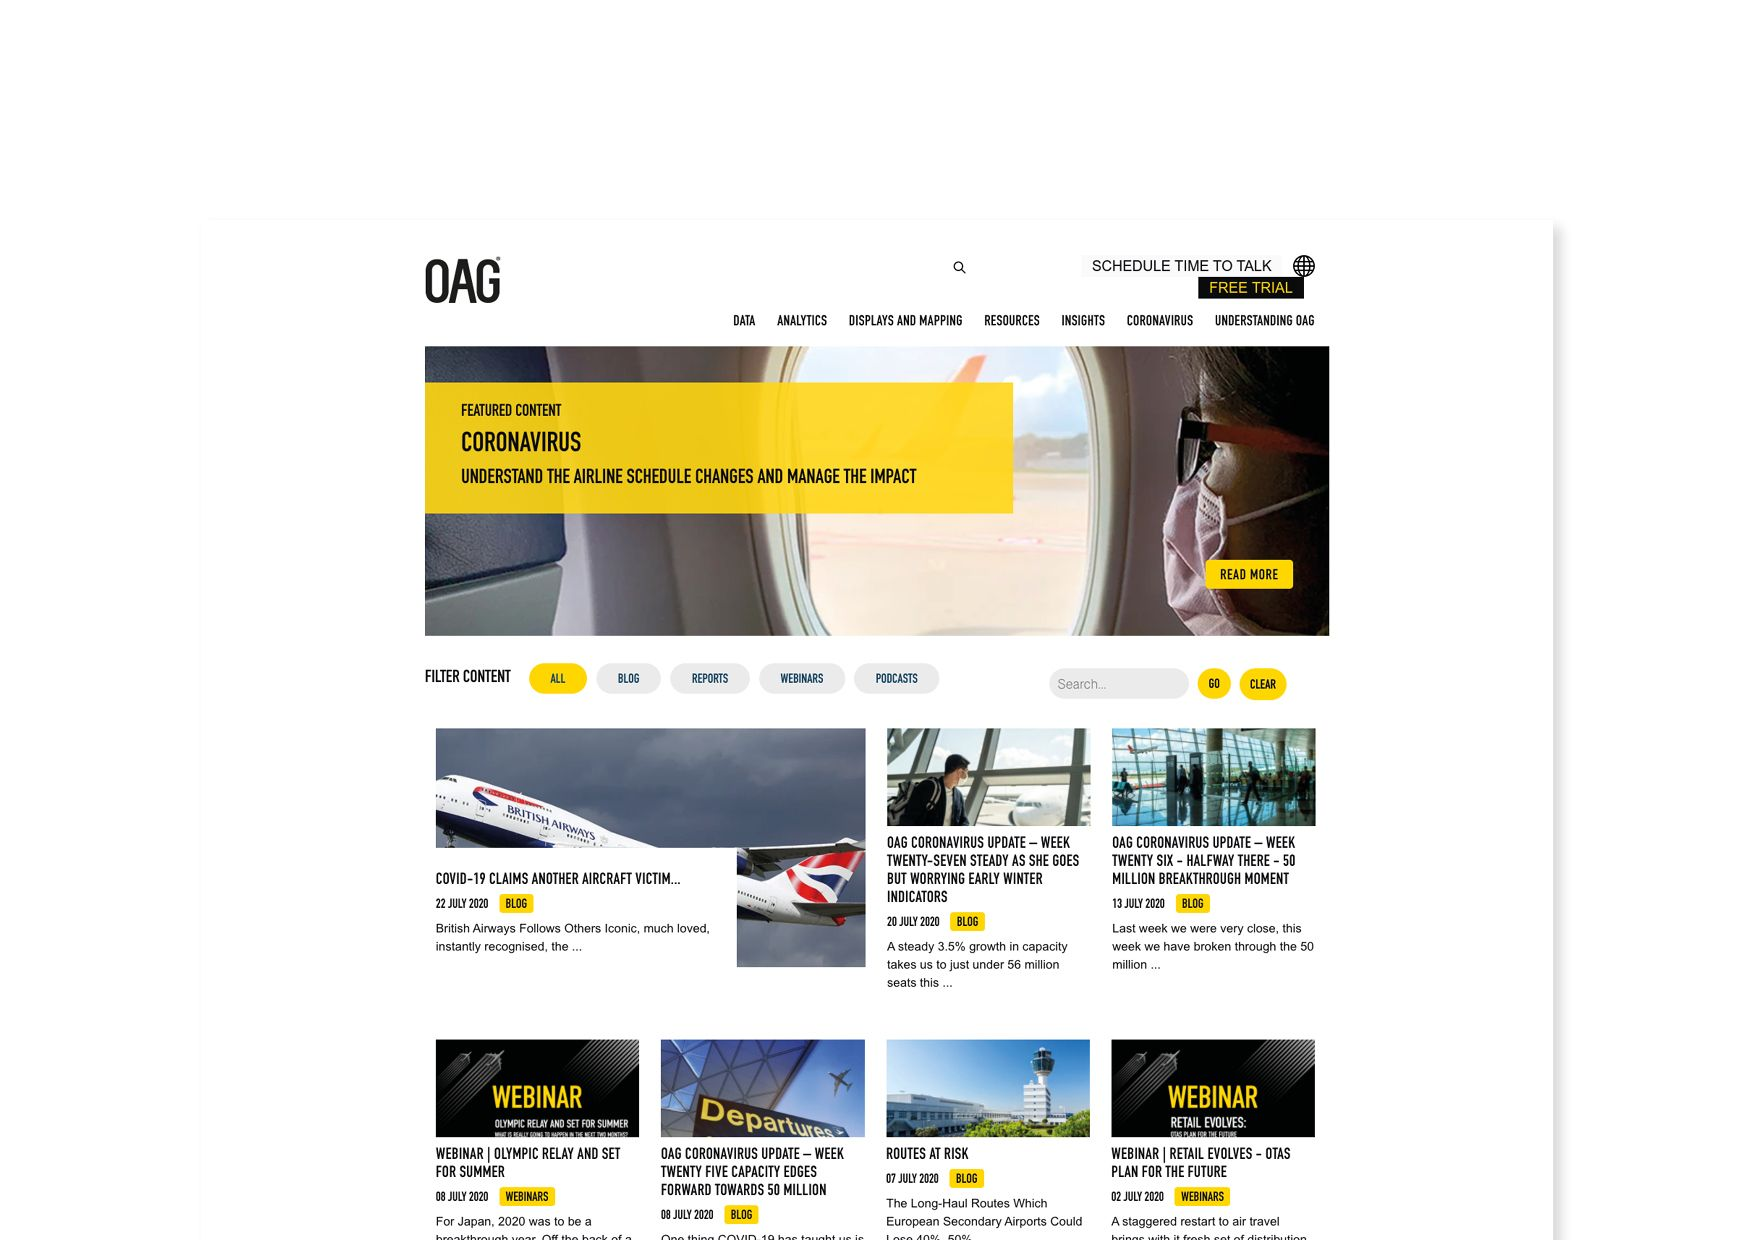 OAG-web-print-digital-ebooks-equinet-media35